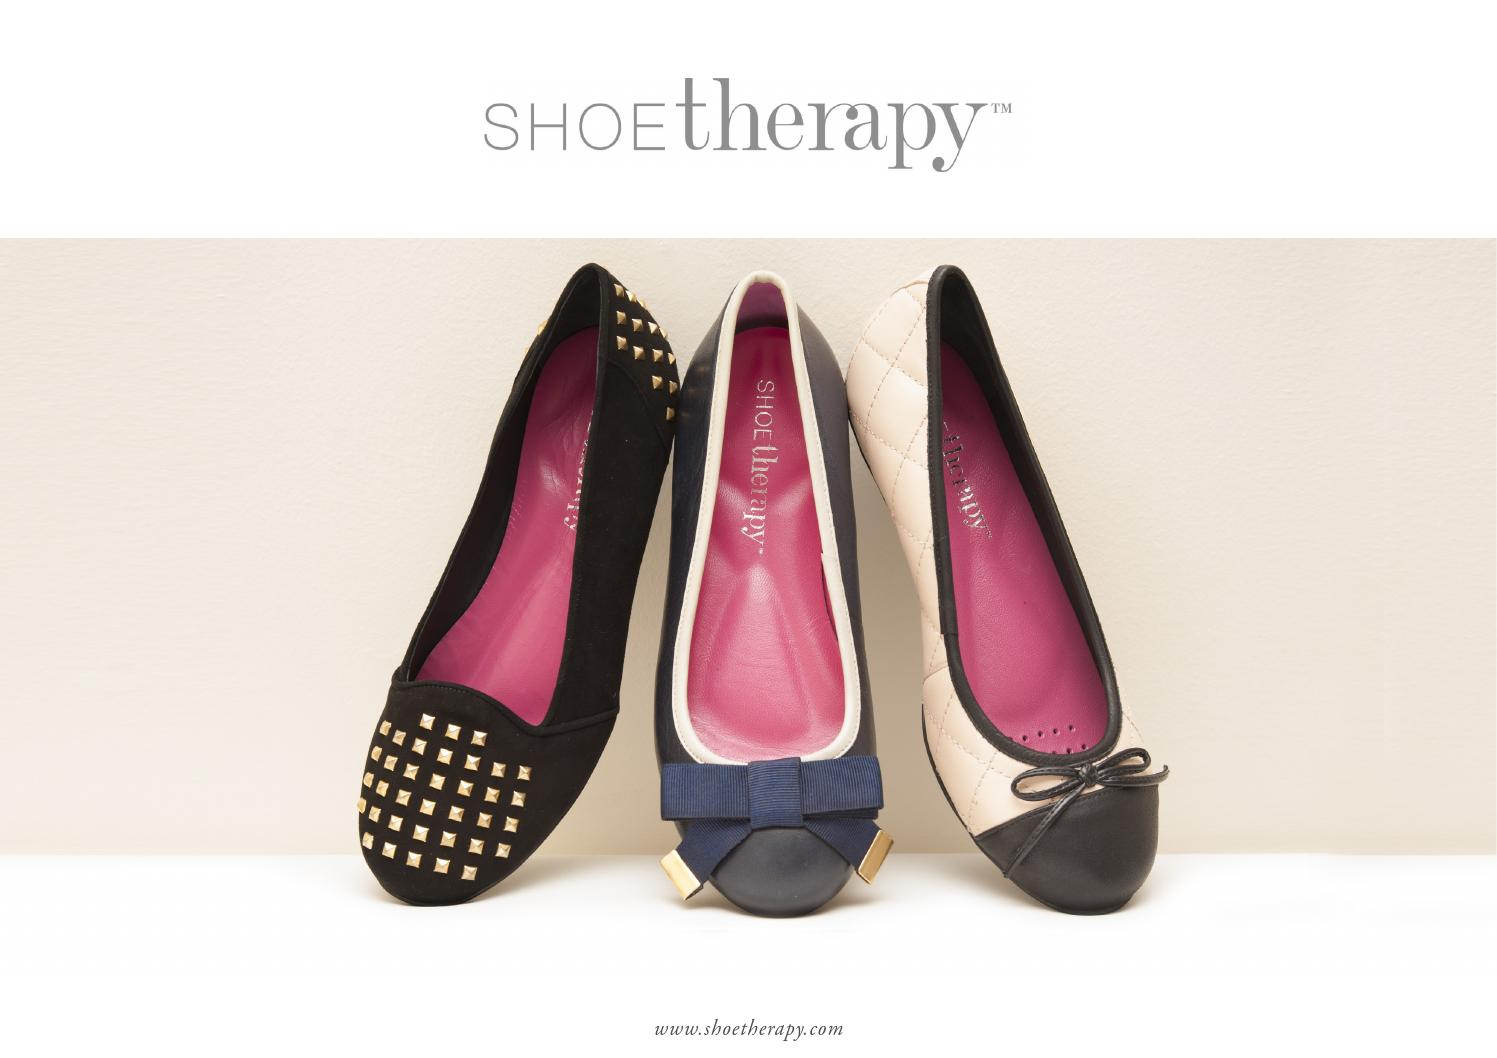 ShoeTherapy Linesheet by Seraphine issuu